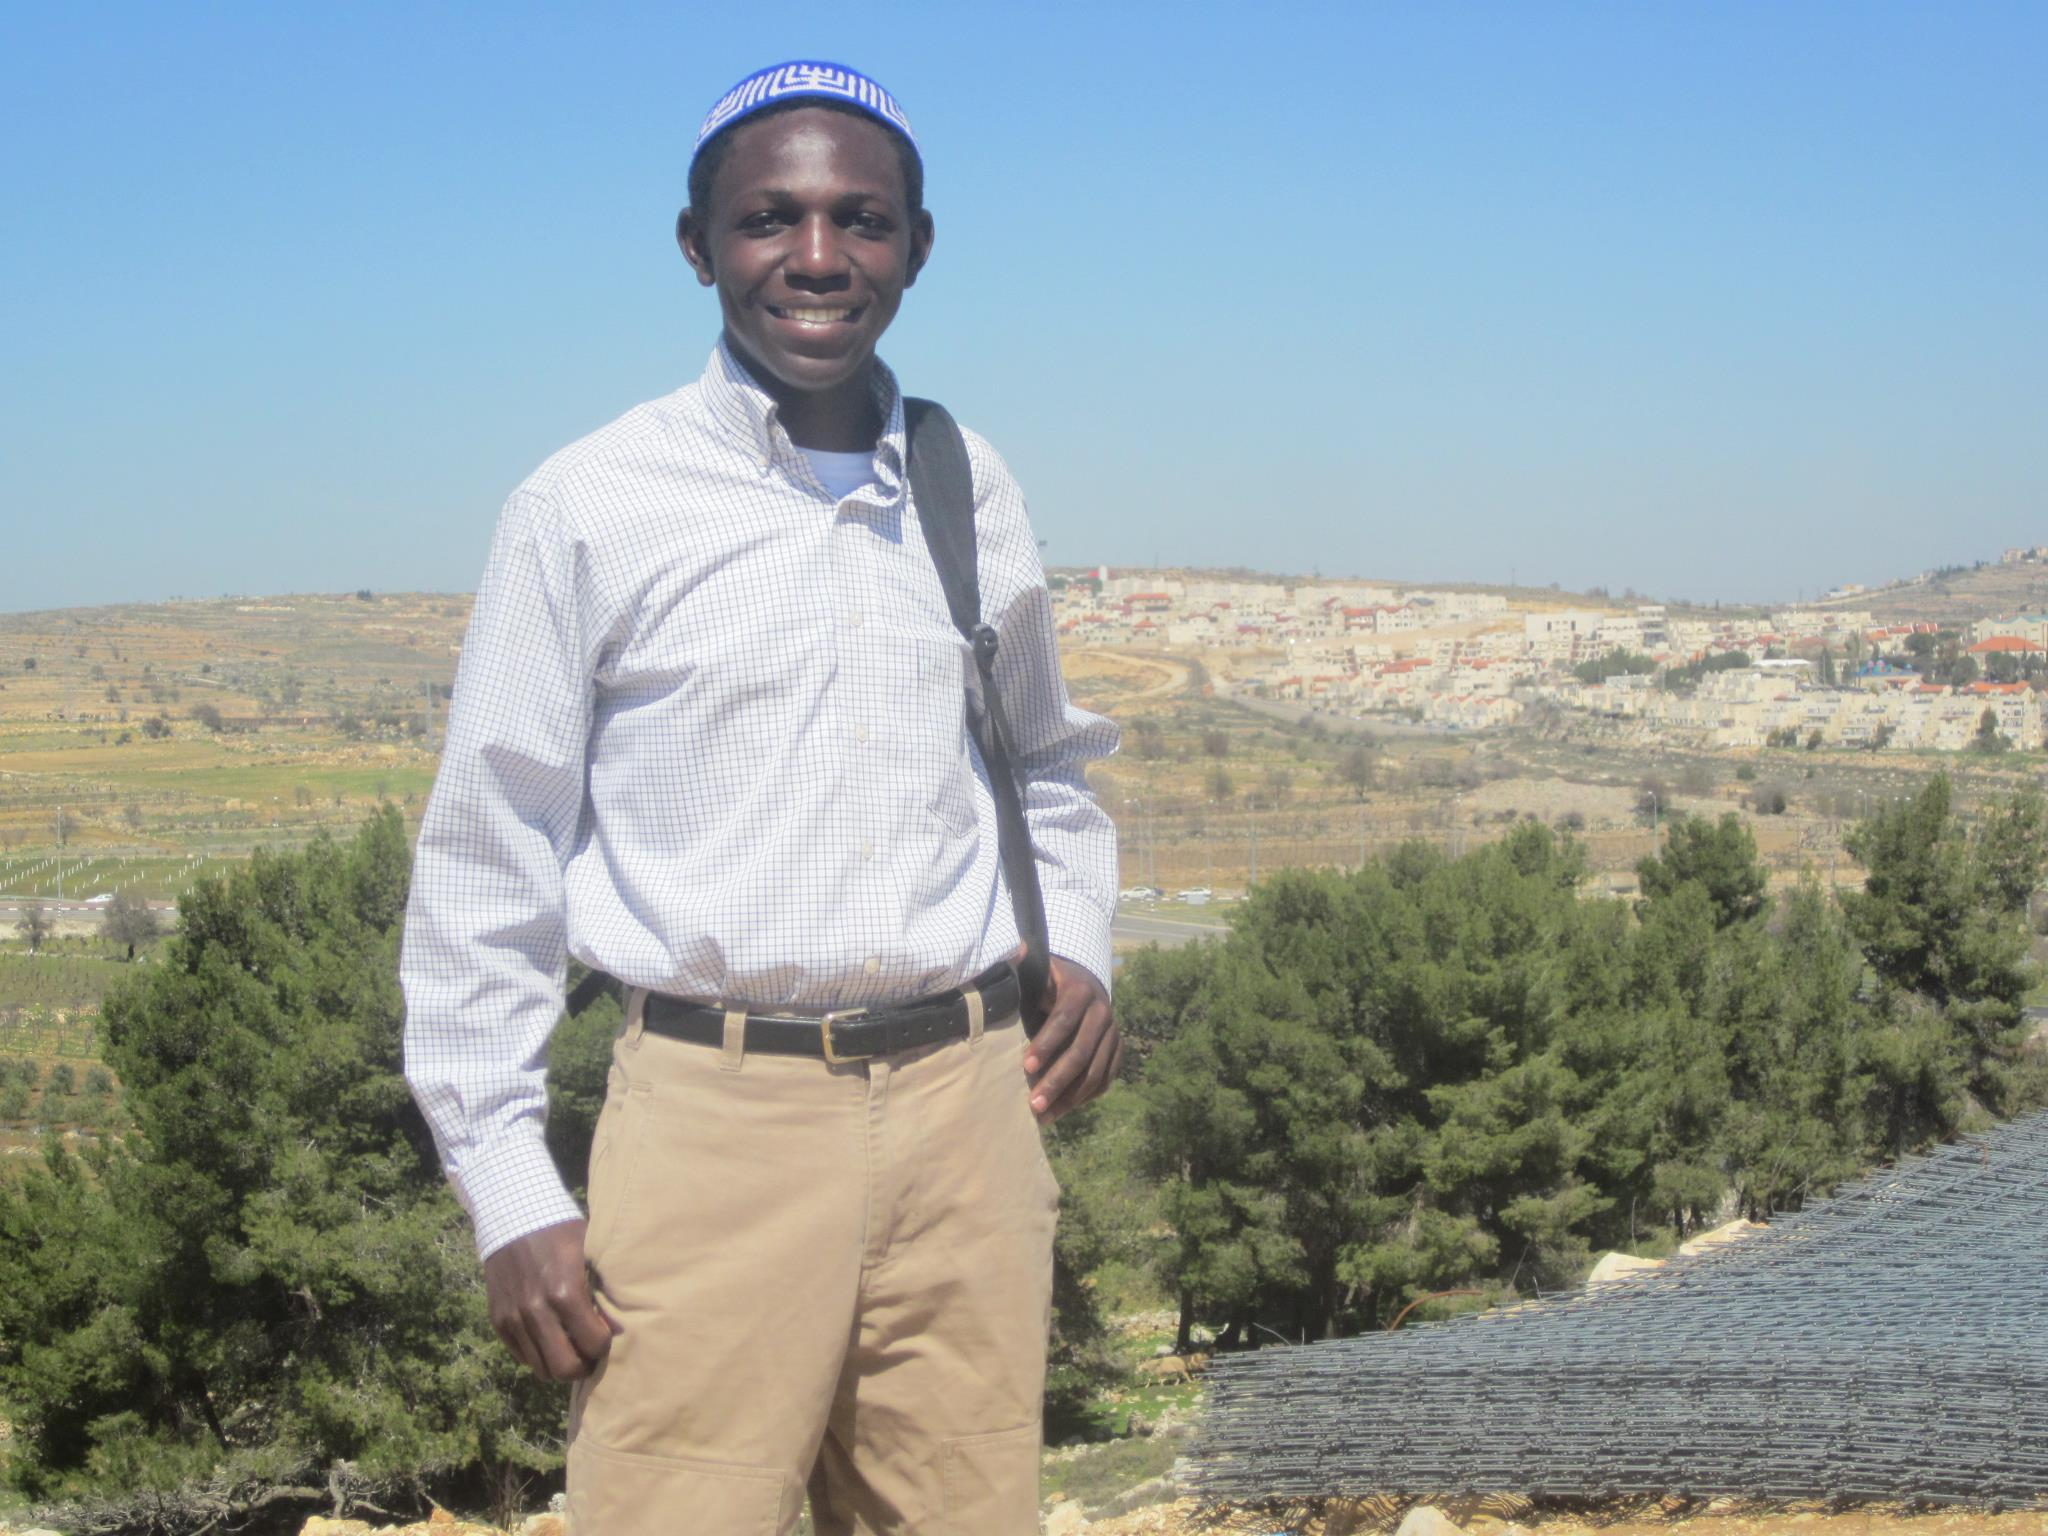 Ugandan, Moshe Madoi, is now studying in Israel and will return to teach and serve as a ritual slaughterer for the 142 other Jews in his village.